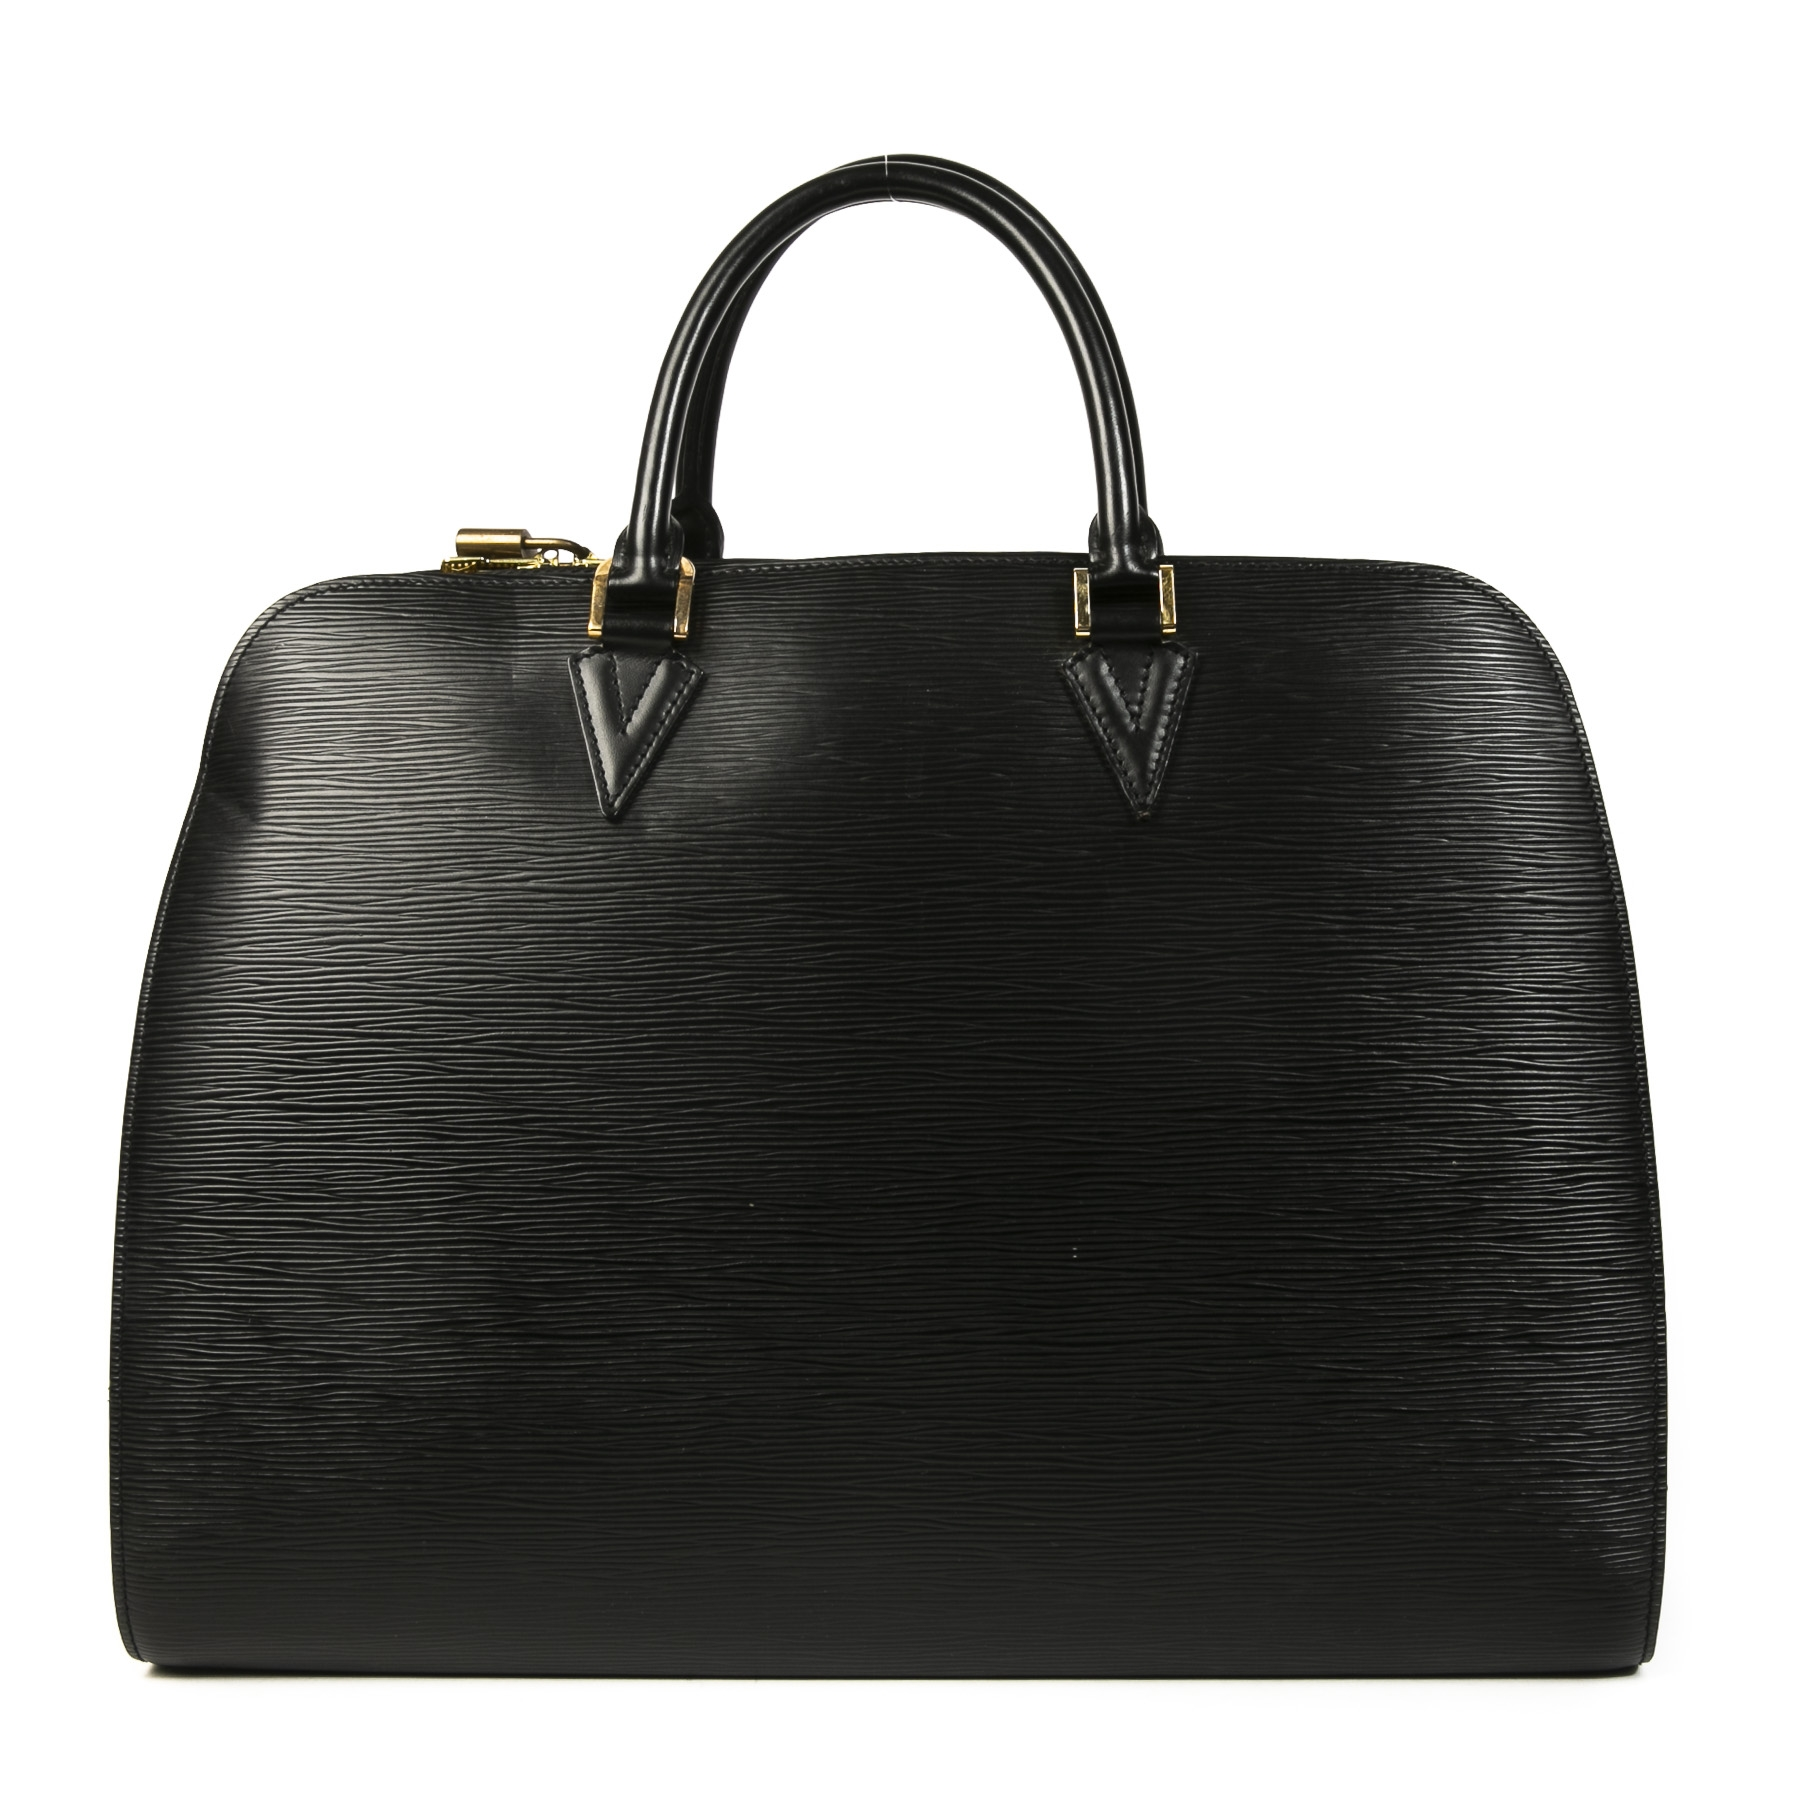 Authentieke tweedehands vintage Louis Vuitton Black Epi Top Handle Bag koop online webshop LabelLOV